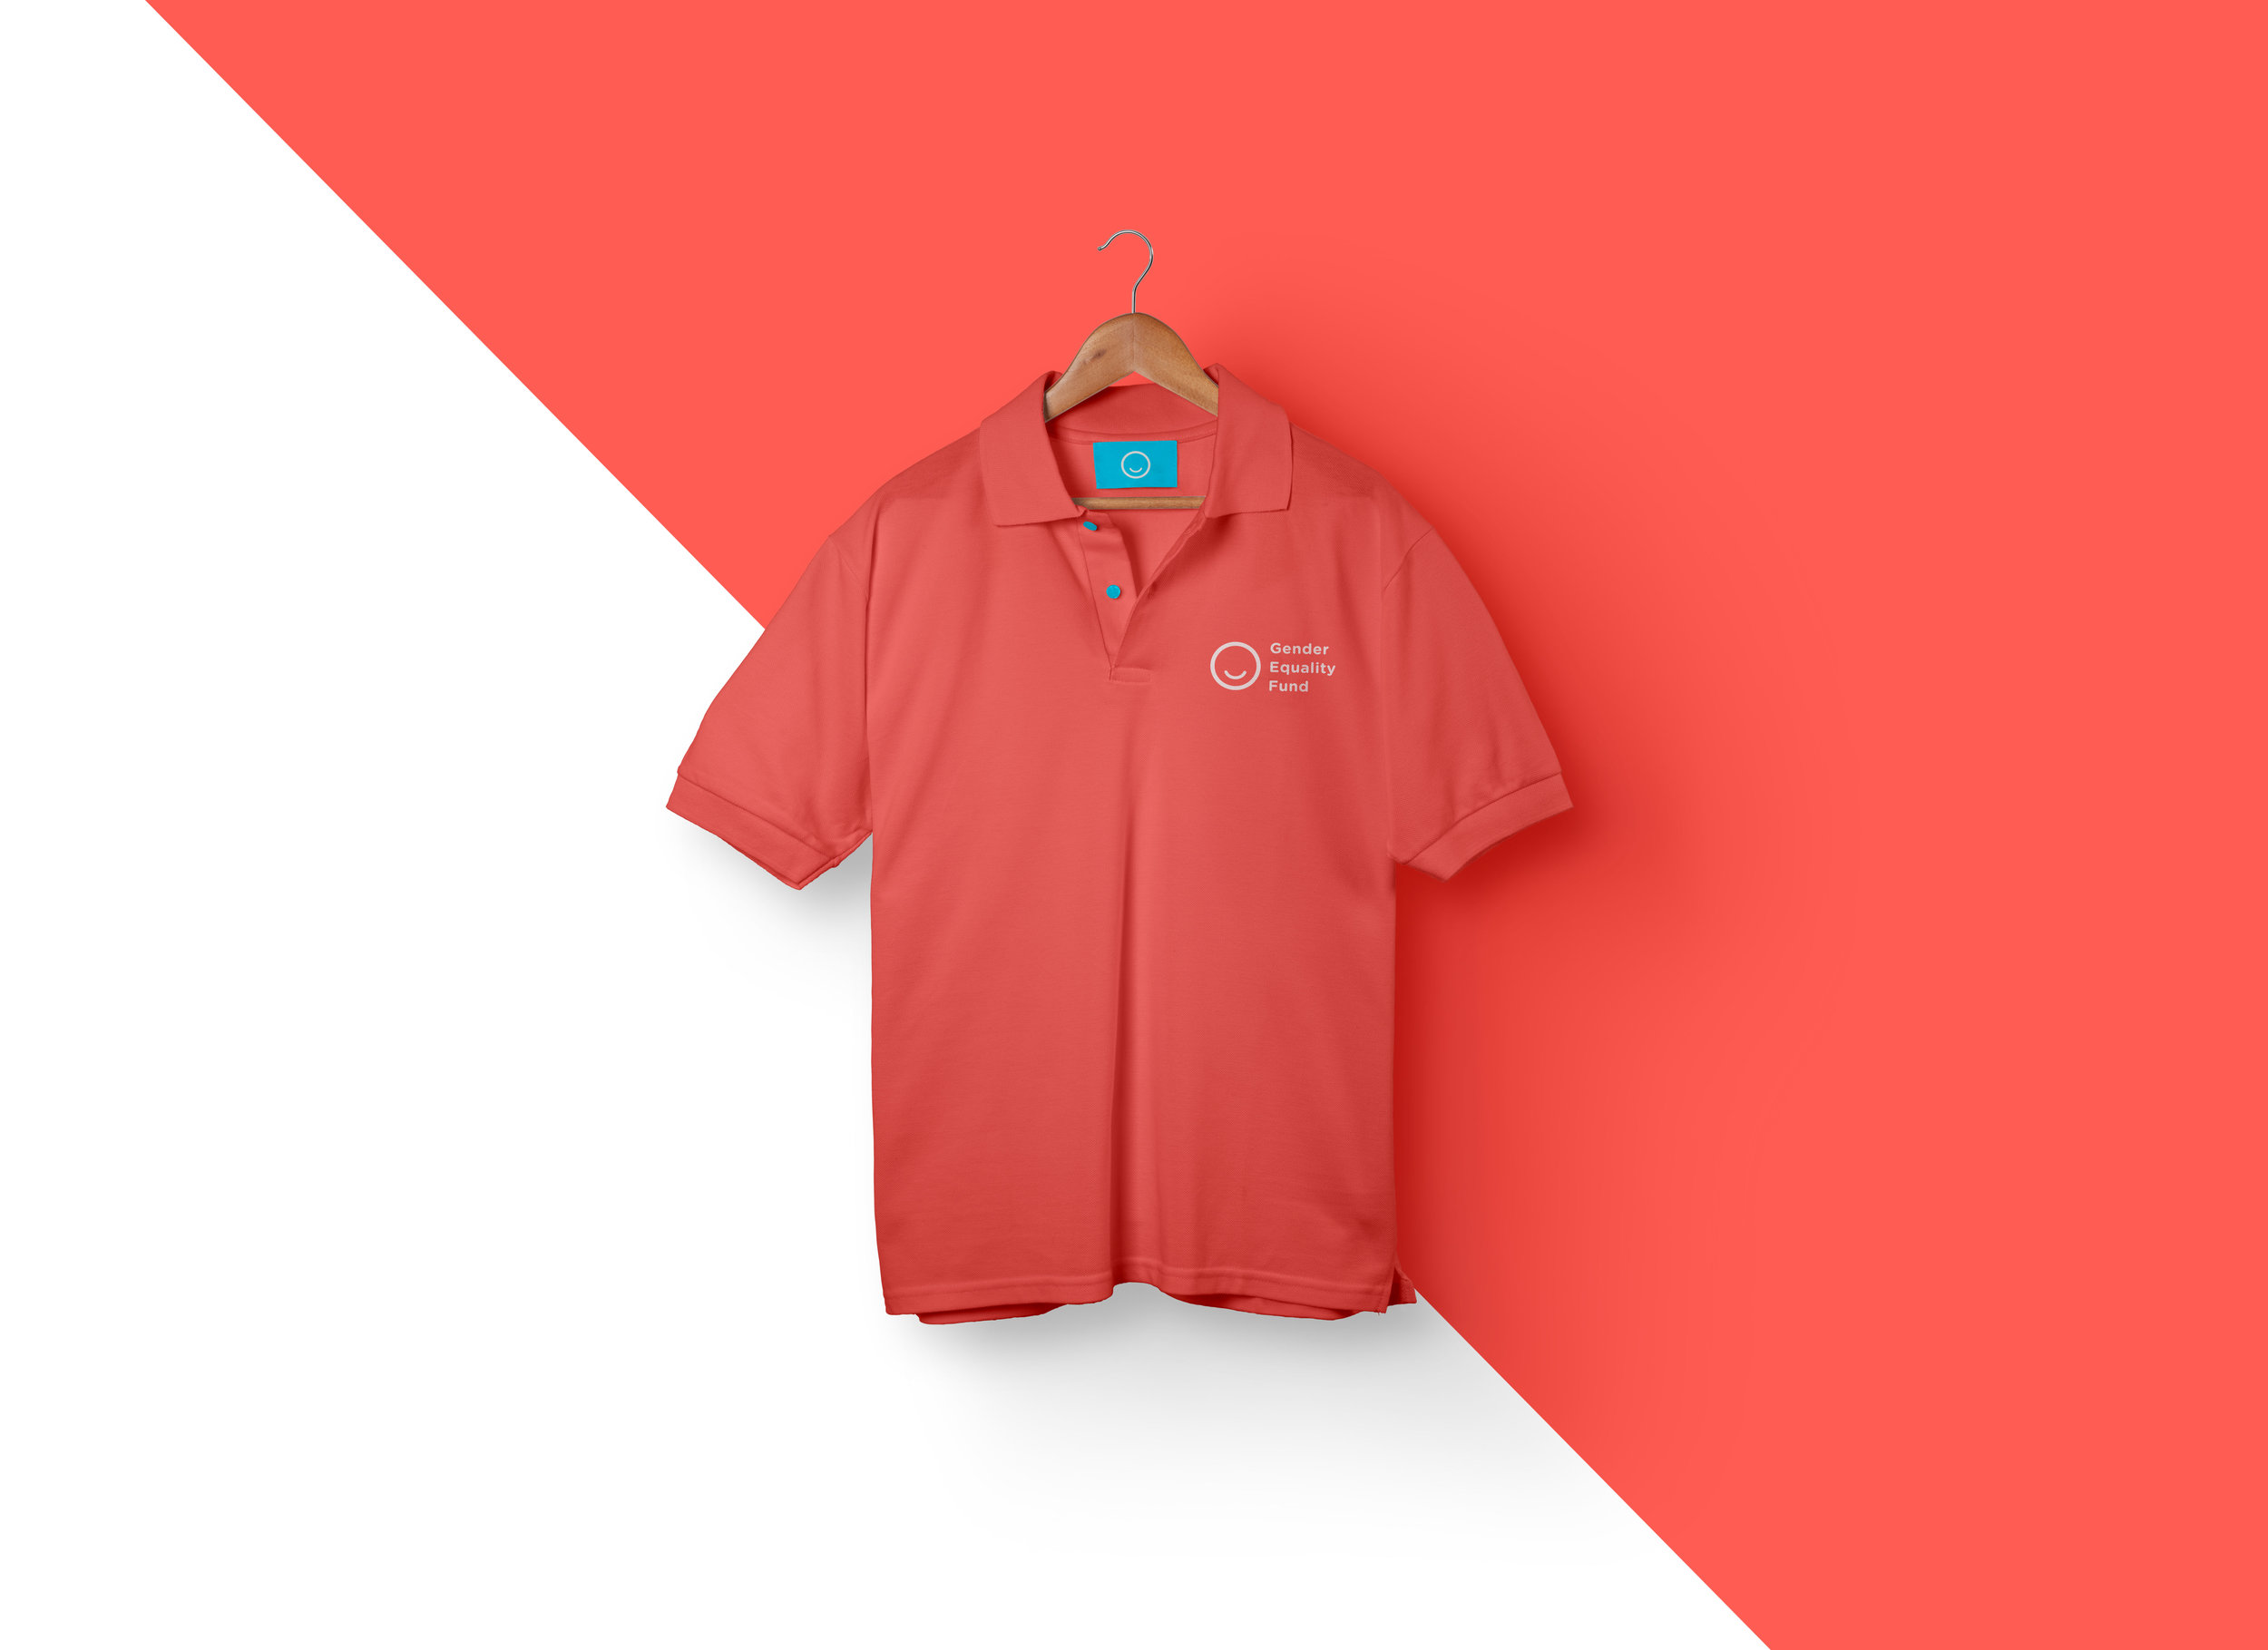 Red t-shirt graphic design